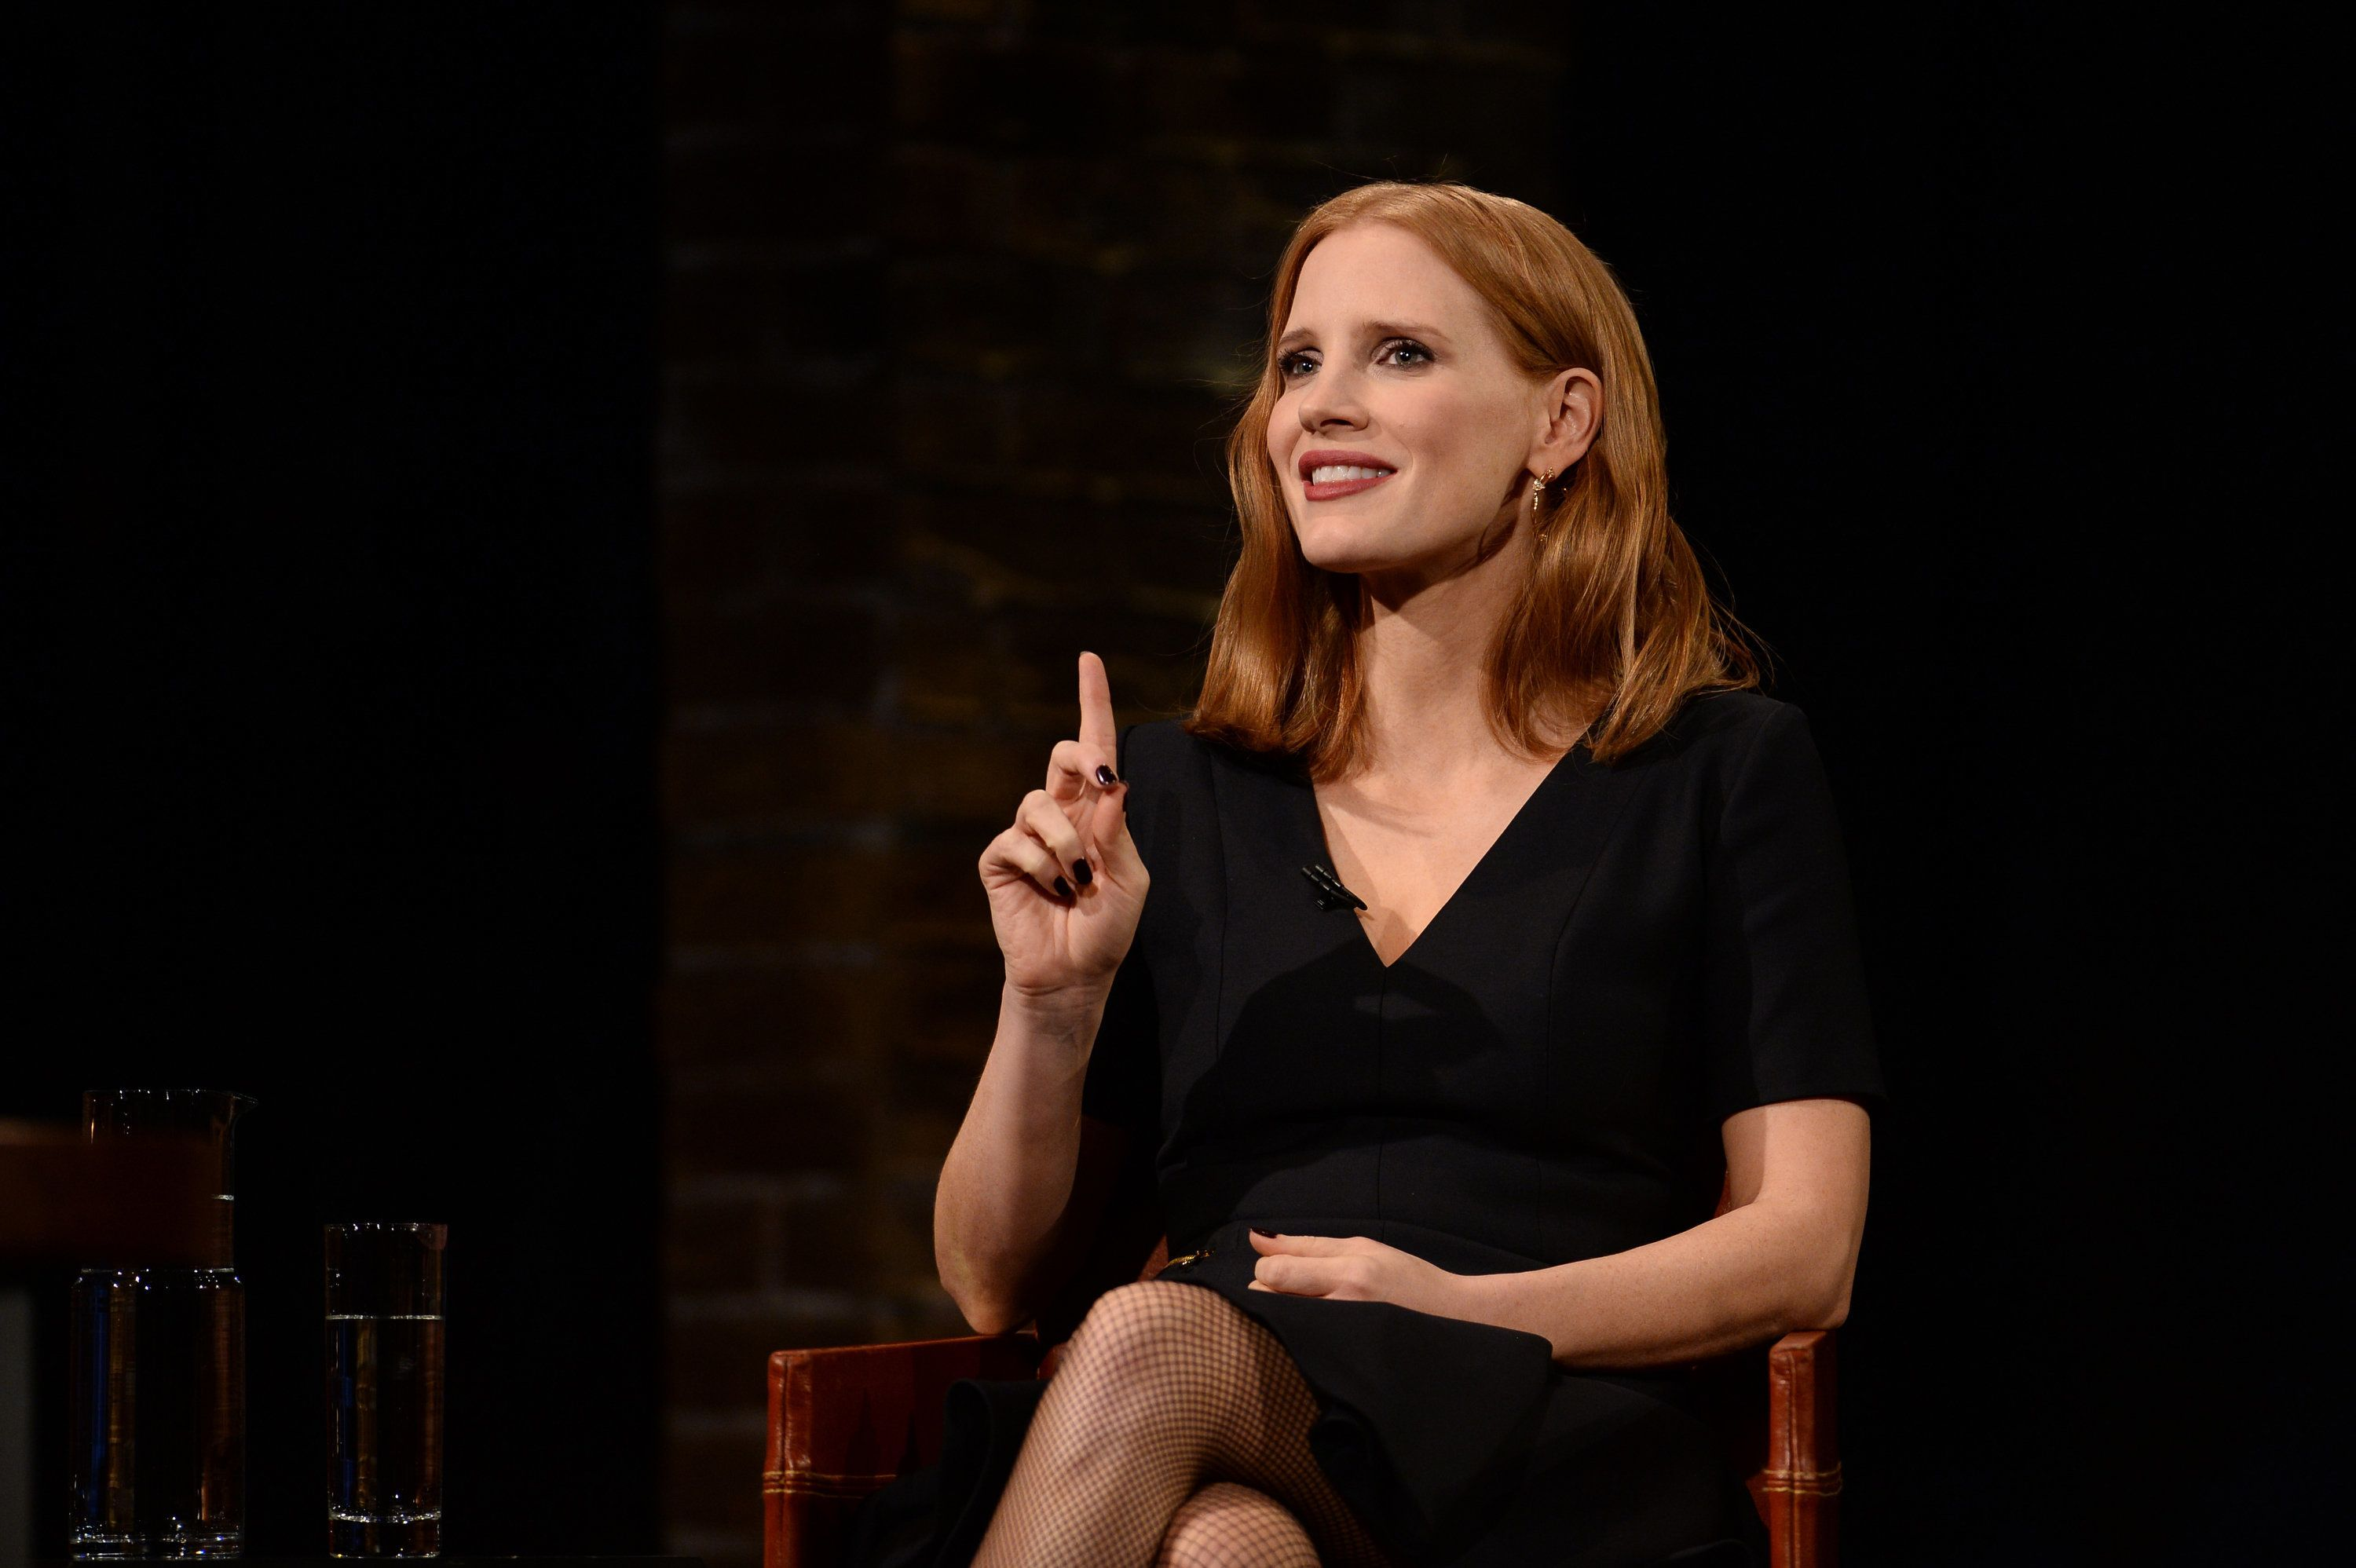 INSIDE THE ACTORS STUDIO -- 'Jessica Chastain' -- Pictured: Jessica Chastain -- (Photo by: Anthony Behar/Bravo/NBCU Photo Bank via Getty Images)